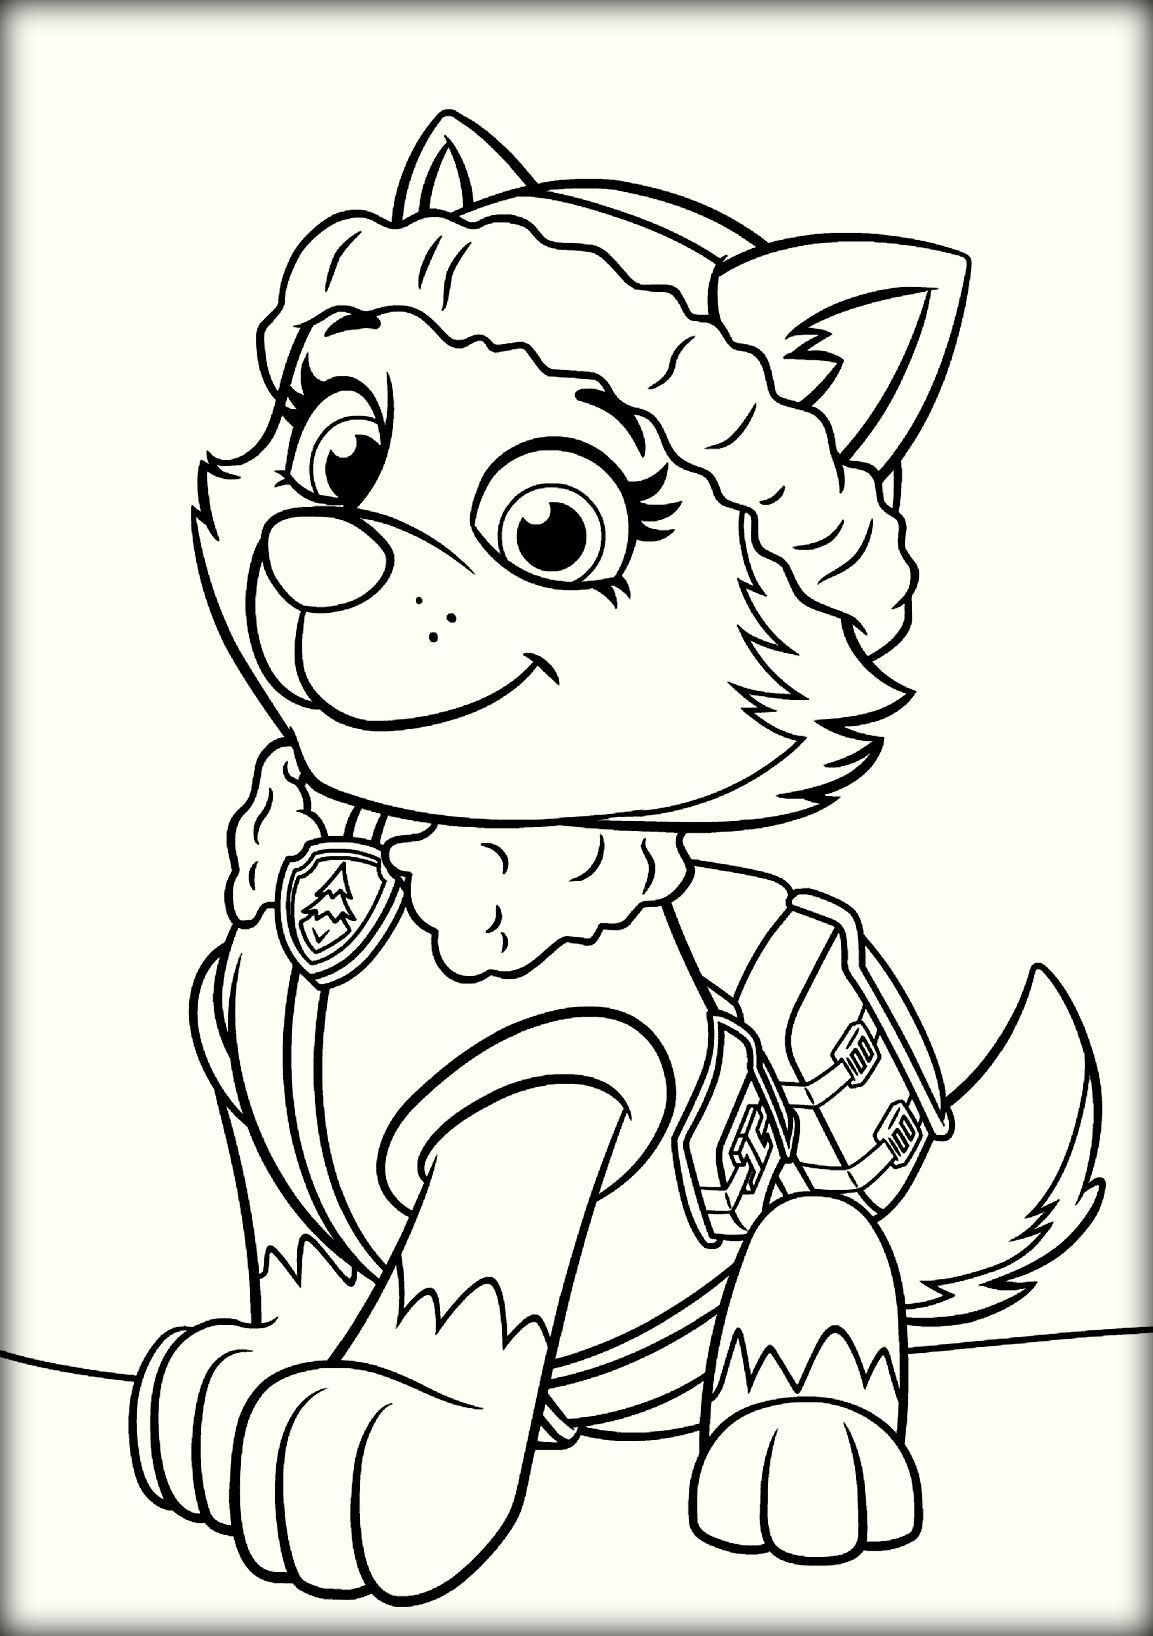 Printable Paw Patrol Everest Coloring Pages Coloring Pages